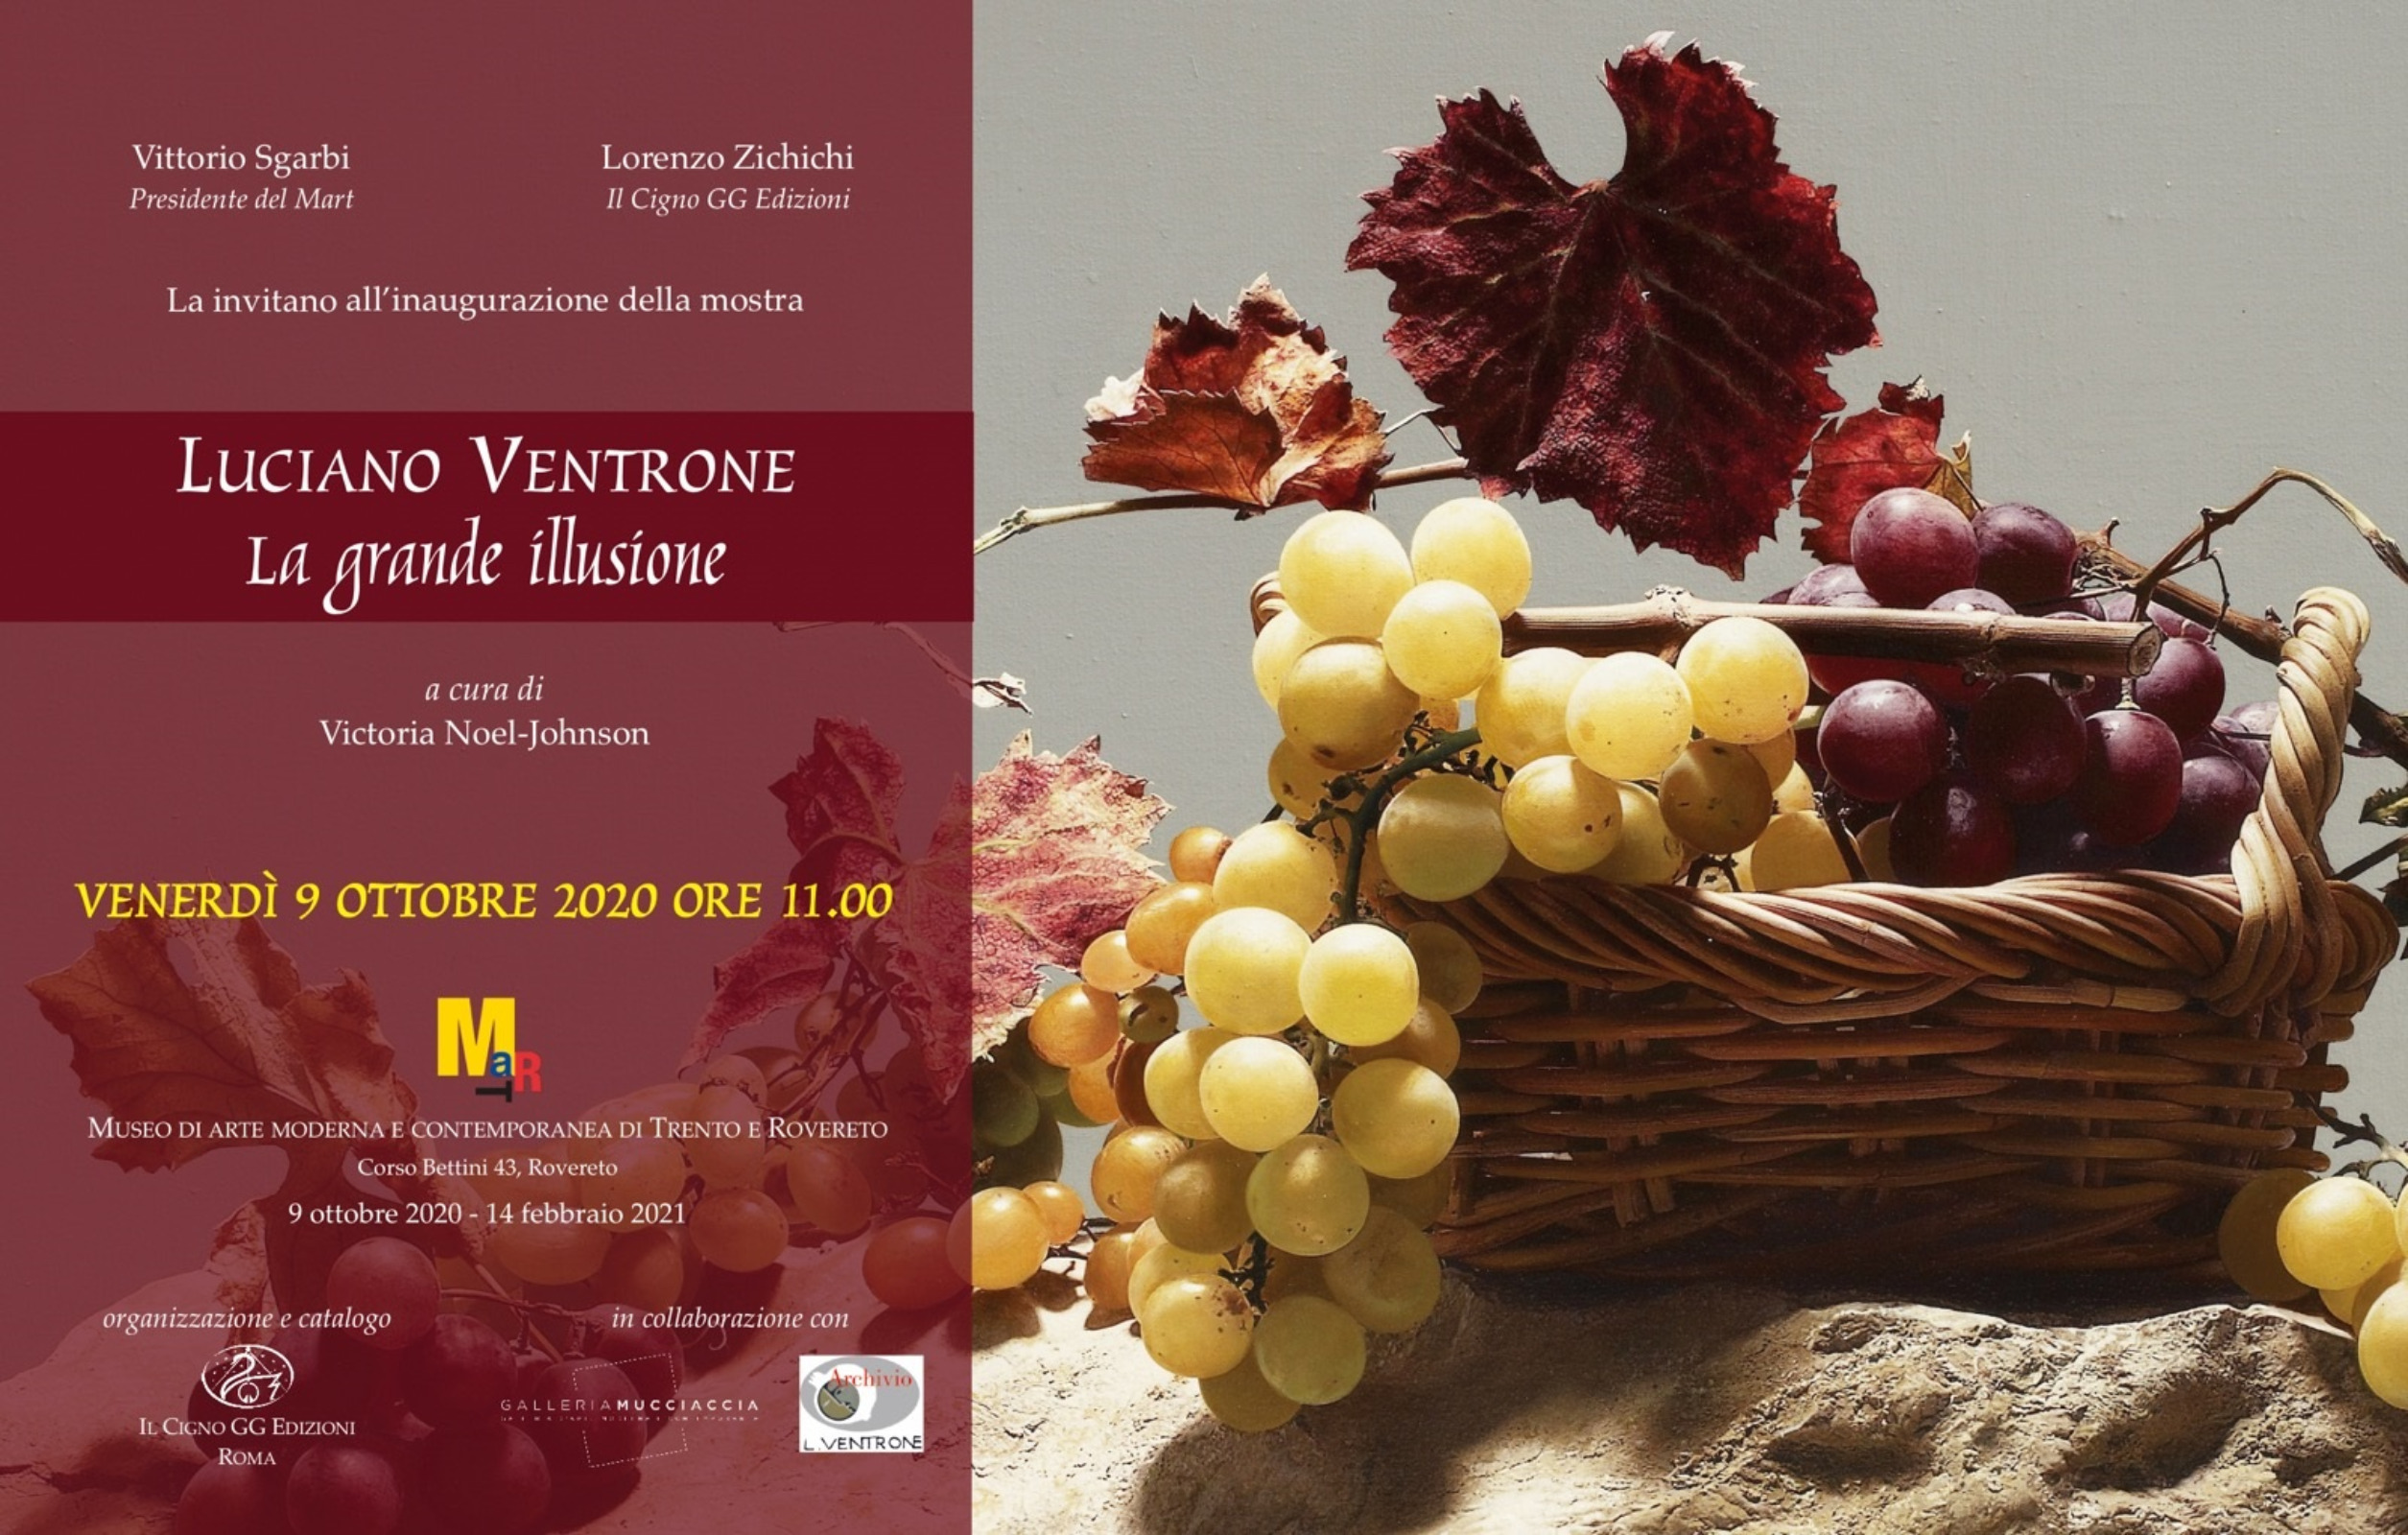 Exhibition 'Luciano Ventrone. La grande illusione', MART, Rovereto